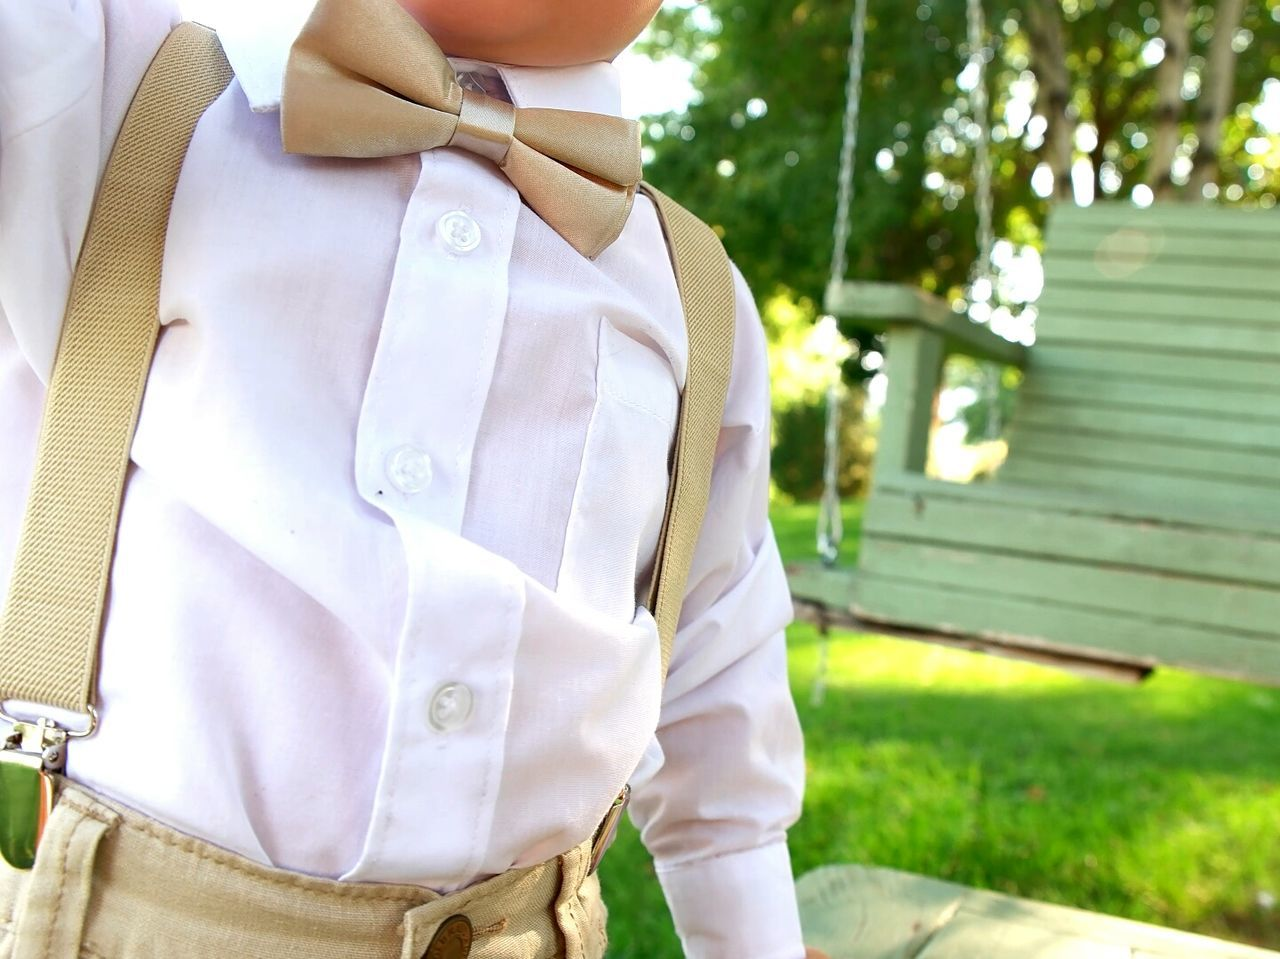 Dressed Up Suspenders Belly Boy Child No Face Wedding Green Color Grass Childhood Bowtie Bow Tie Ring Bearer Wedding Day Marriage  Wedding Details Weddings Wedding Photos Weddinginspiration Wedding Photography Close-up Weddingday  Weddings Around The World Wedding Ceremony Celebration Event